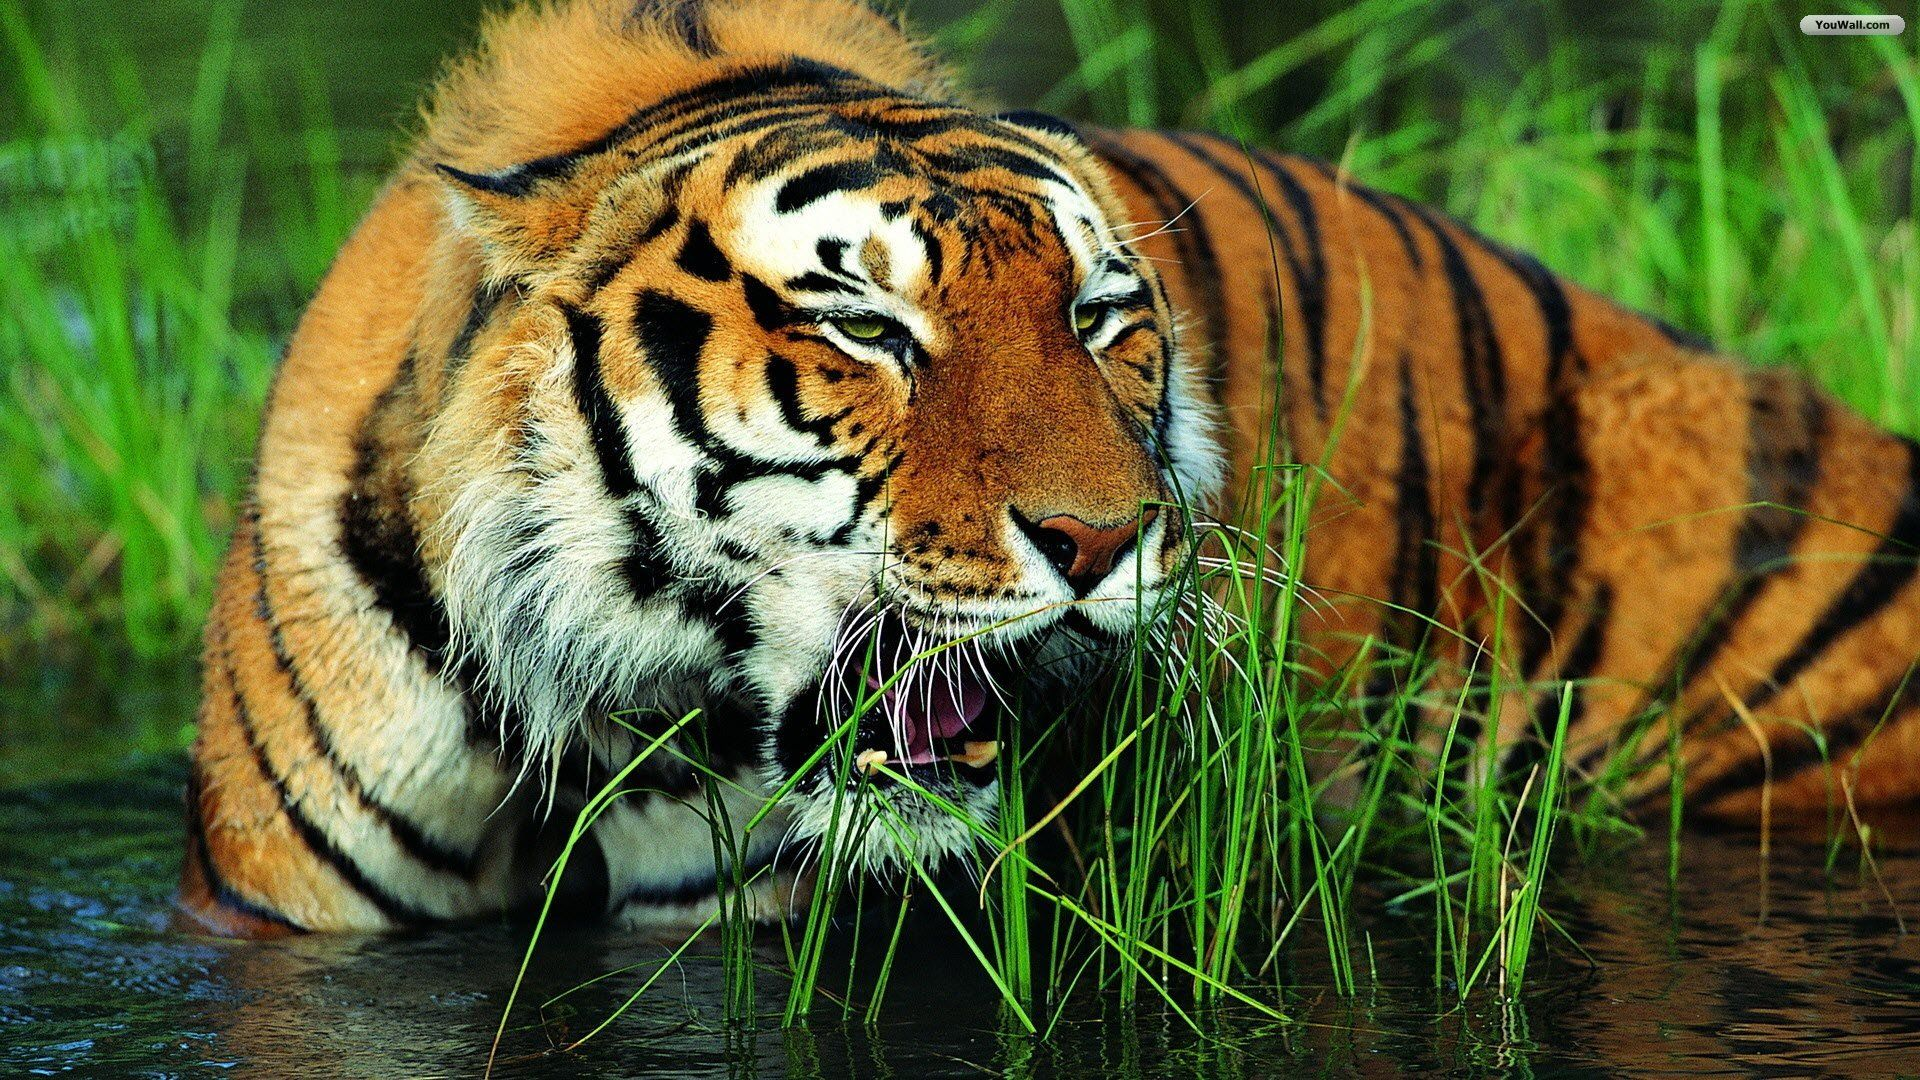 tiger live wallpaper android apps on google play 1280×800 tiger